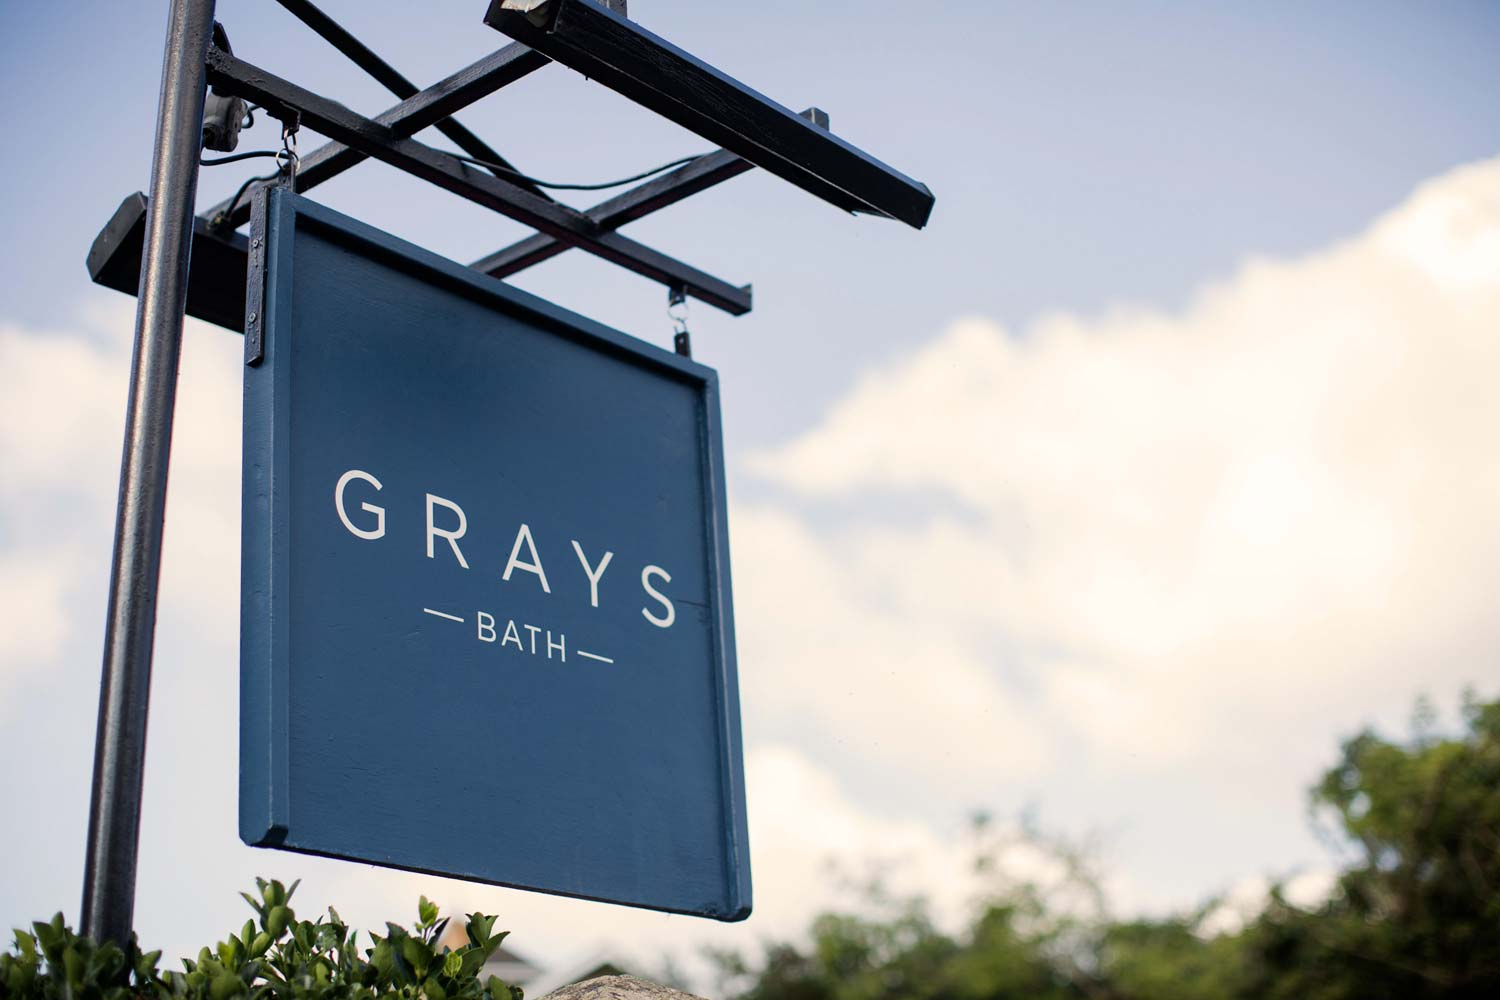 Gallery of images for Grays Bath B&B | a boutique Bed & Breakfast in ...